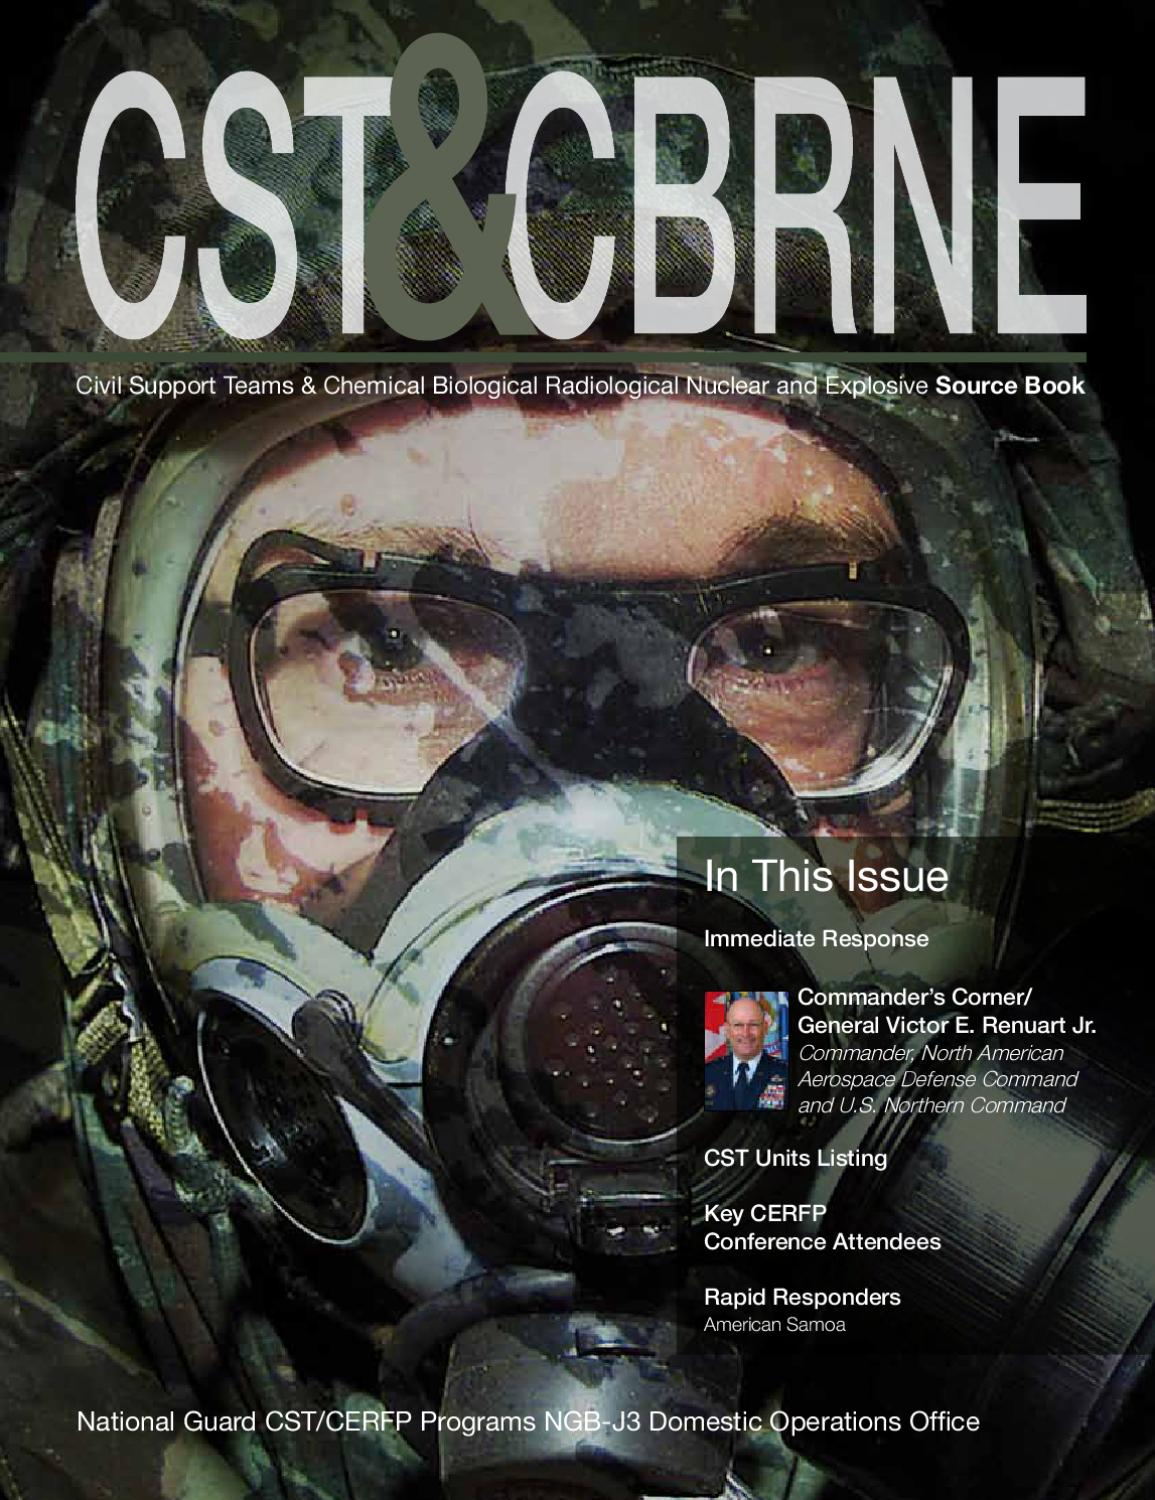 CST/CBRNE Sourcebook, January 2010 by Tactical Defense Media - issuu